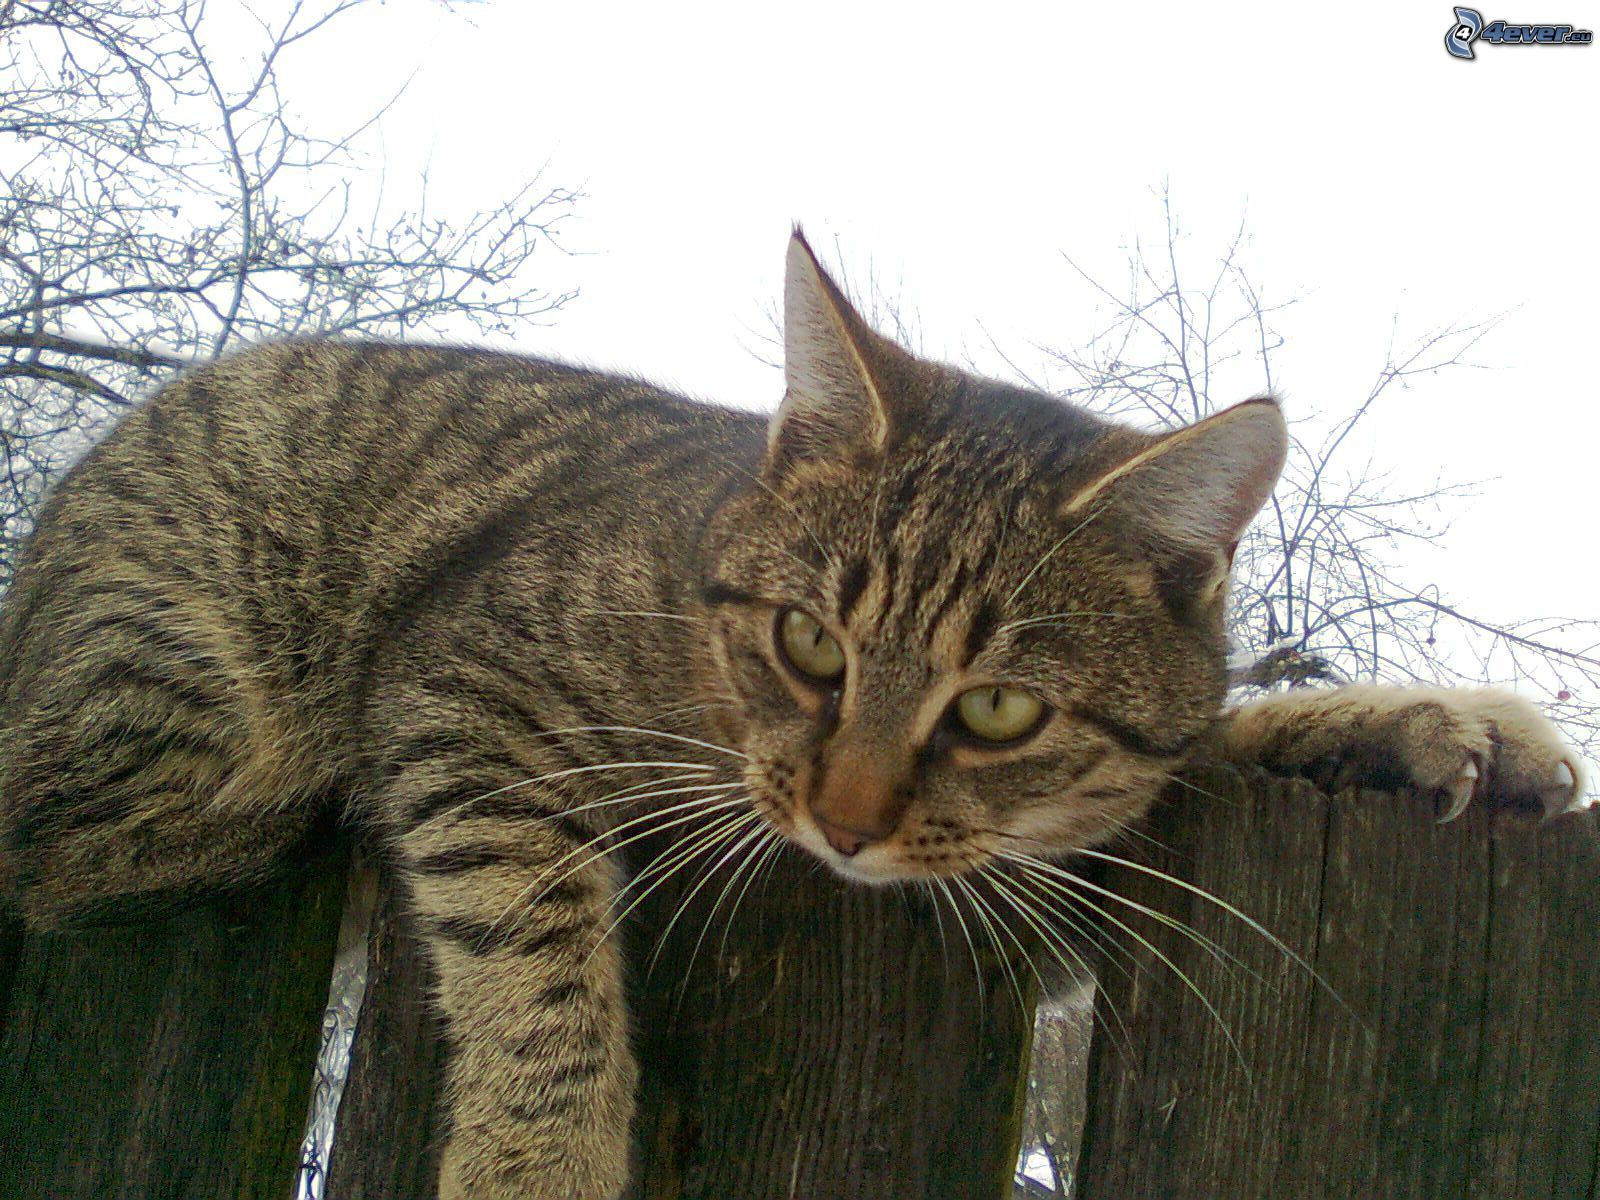 tomcat on the fence